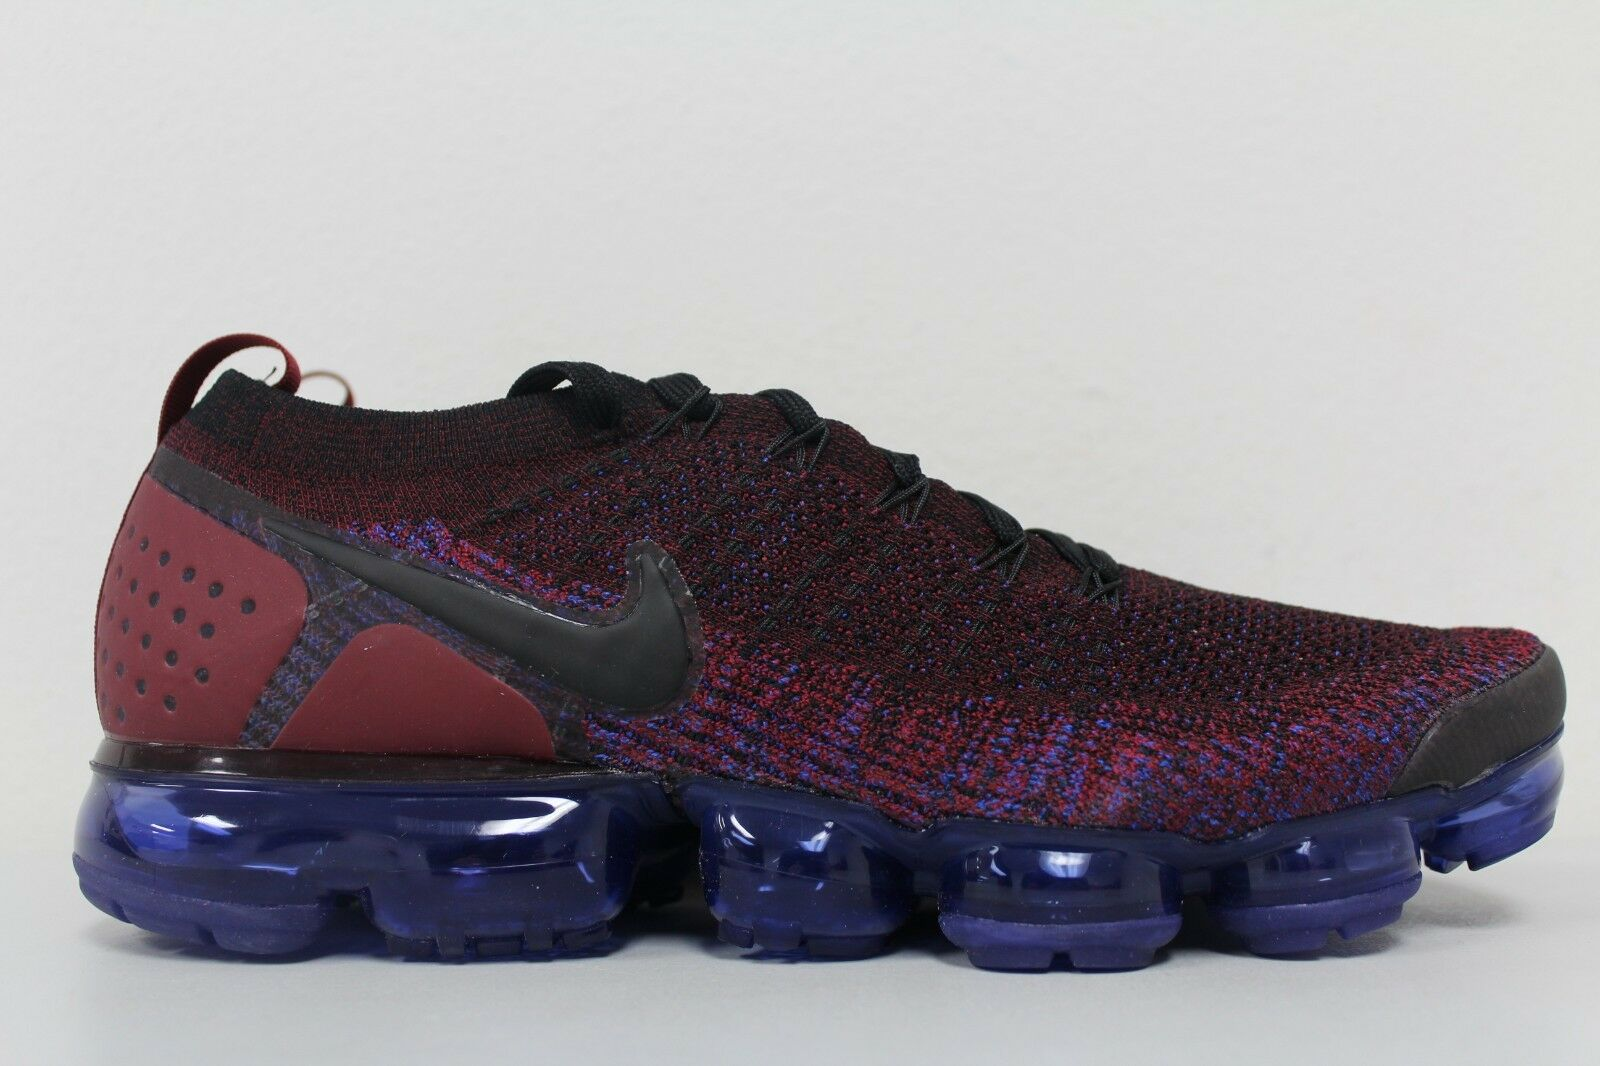 97d48caec6 Nike Air Vapormax Flyknit 2.0 Team Red Racer bluee Black 942842-006 Size  11.5